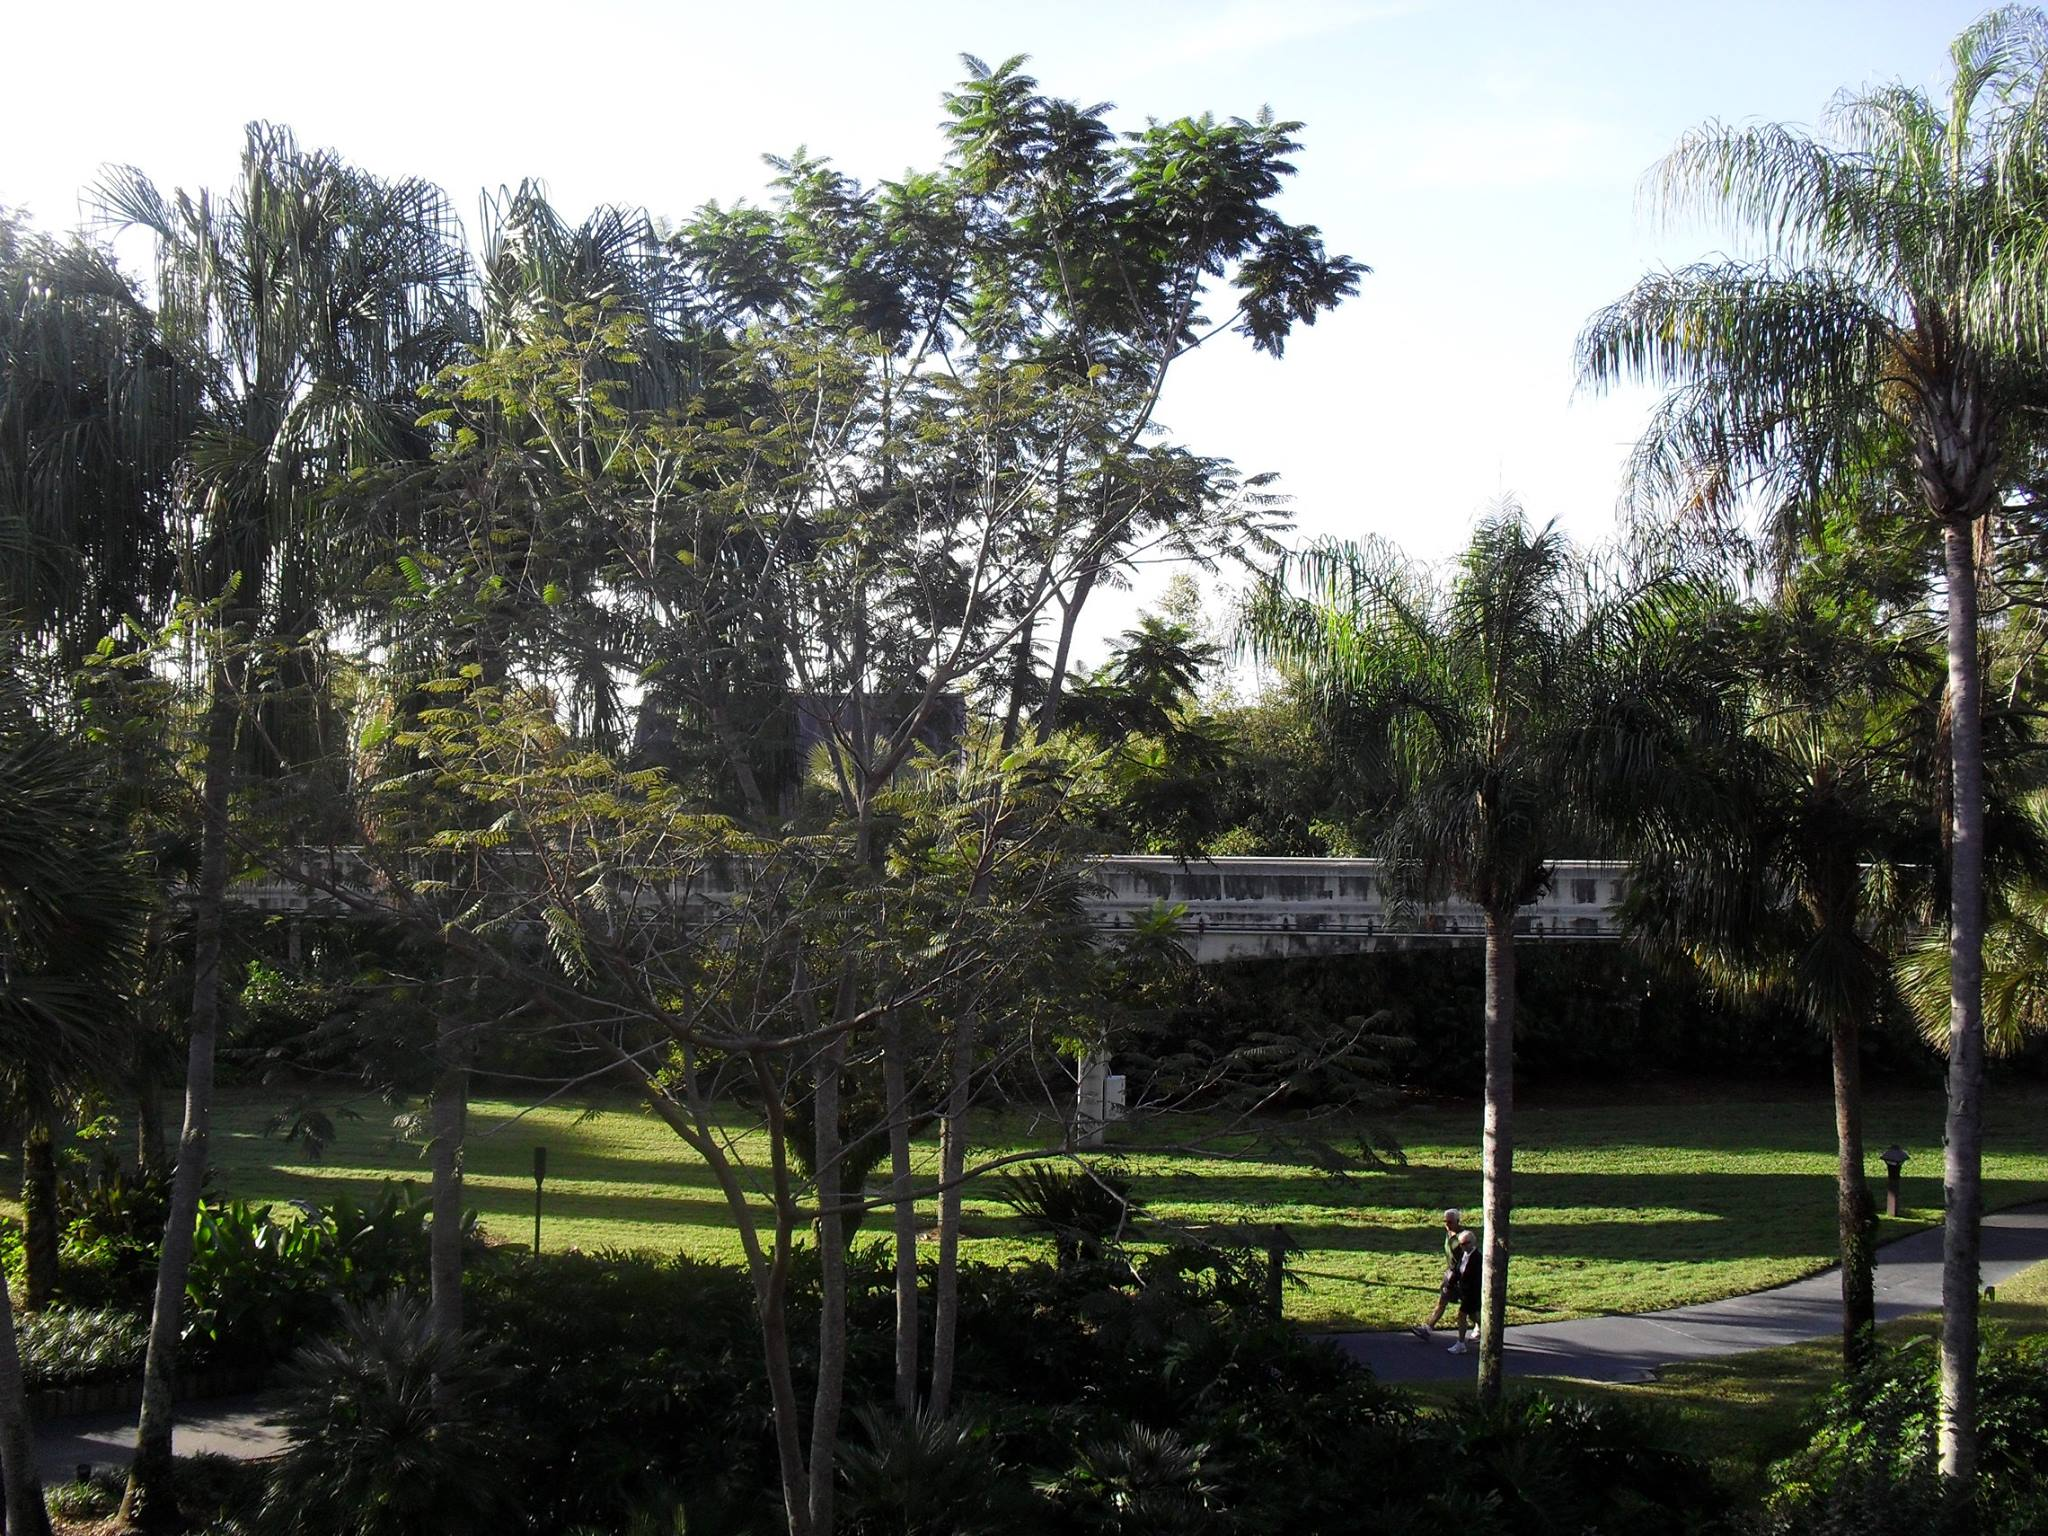 Morning View of the Monorail area of the Polynesian(2011)